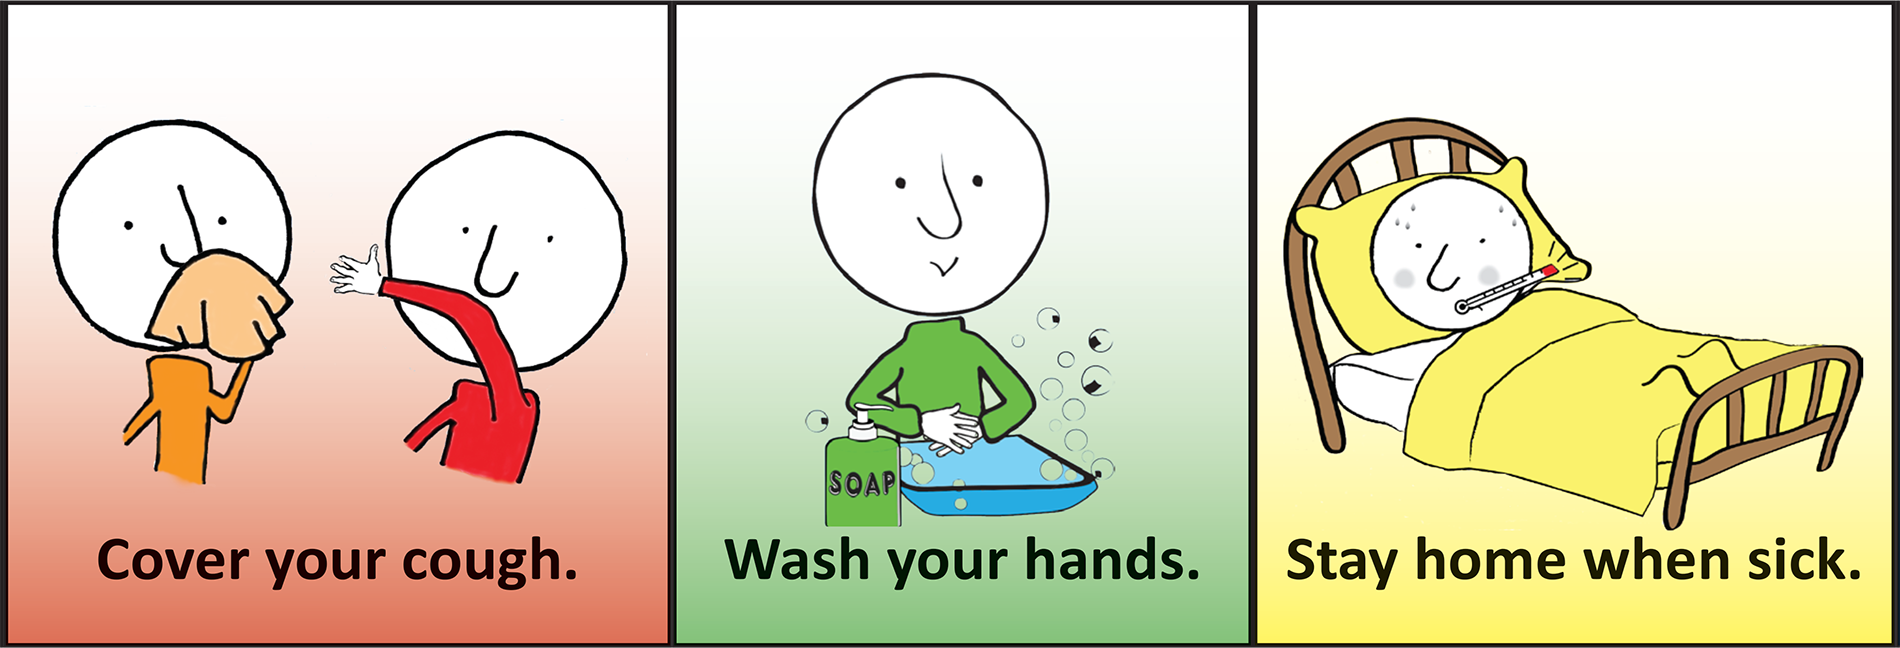 Cover your cough. Wash your hands. Stay home when sick.